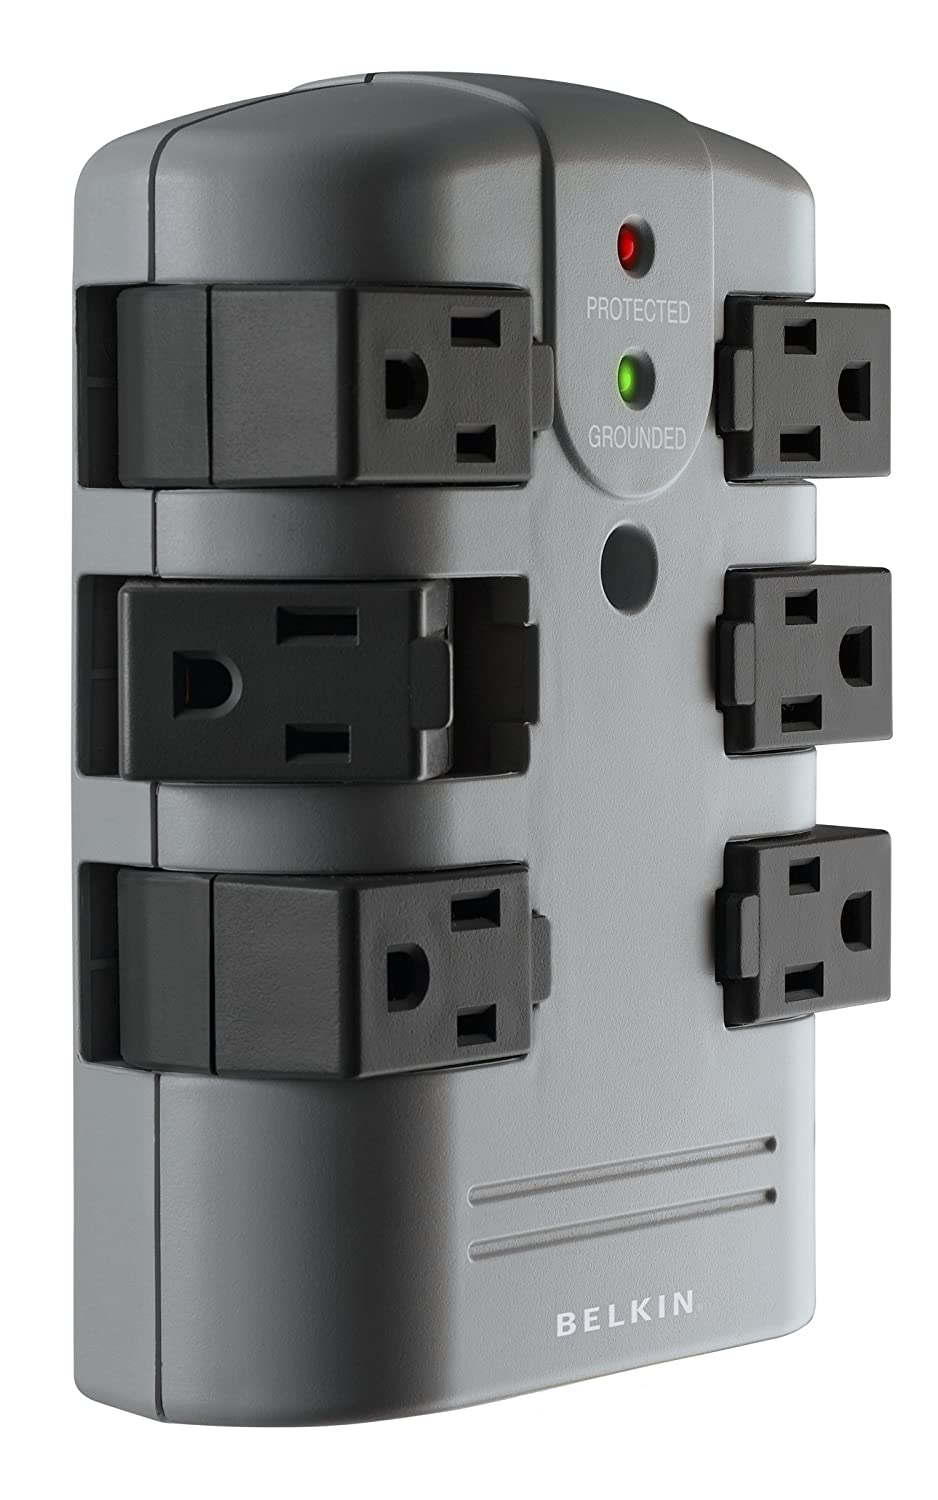 81fr35ebK7L._SL1500_ amazon com belkin 6 outlet pivot plug wall mount power strip surge protector fuse box at soozxer.org